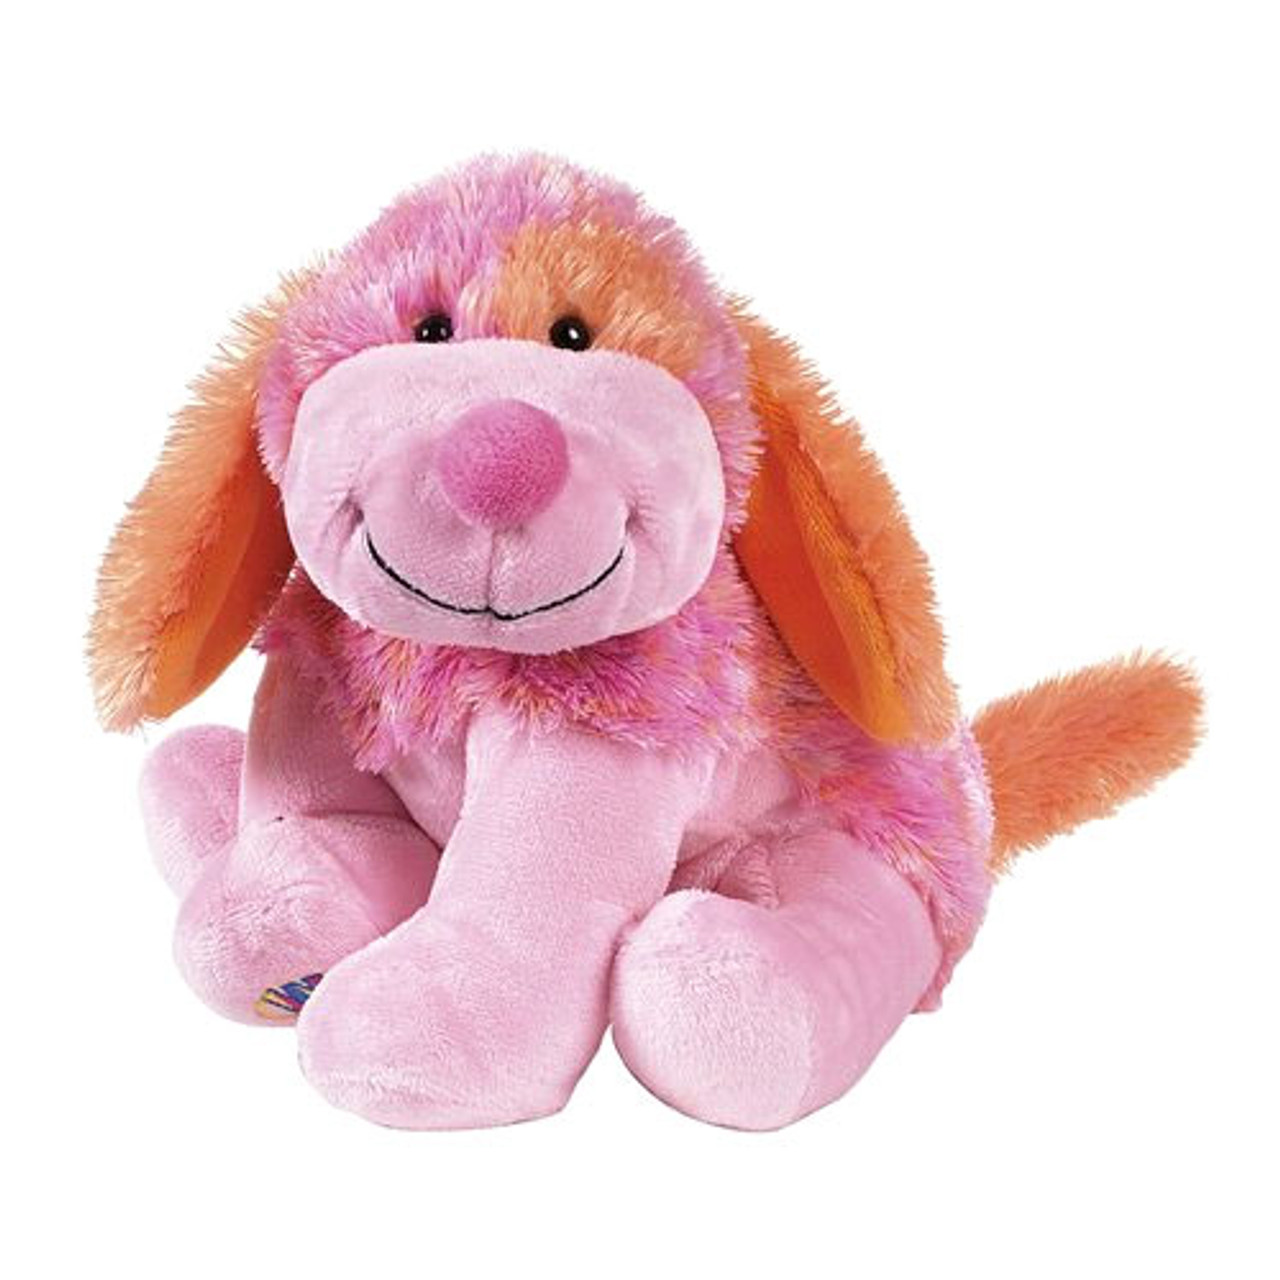 Buy Webkinz Tiger Snake New with Sealed Tags and Unused Code - Retired-: Stuffed Animals & Teddy Bears - fastdownloadecoqy.cf FREE DELIVERY possible on eligible purchases.